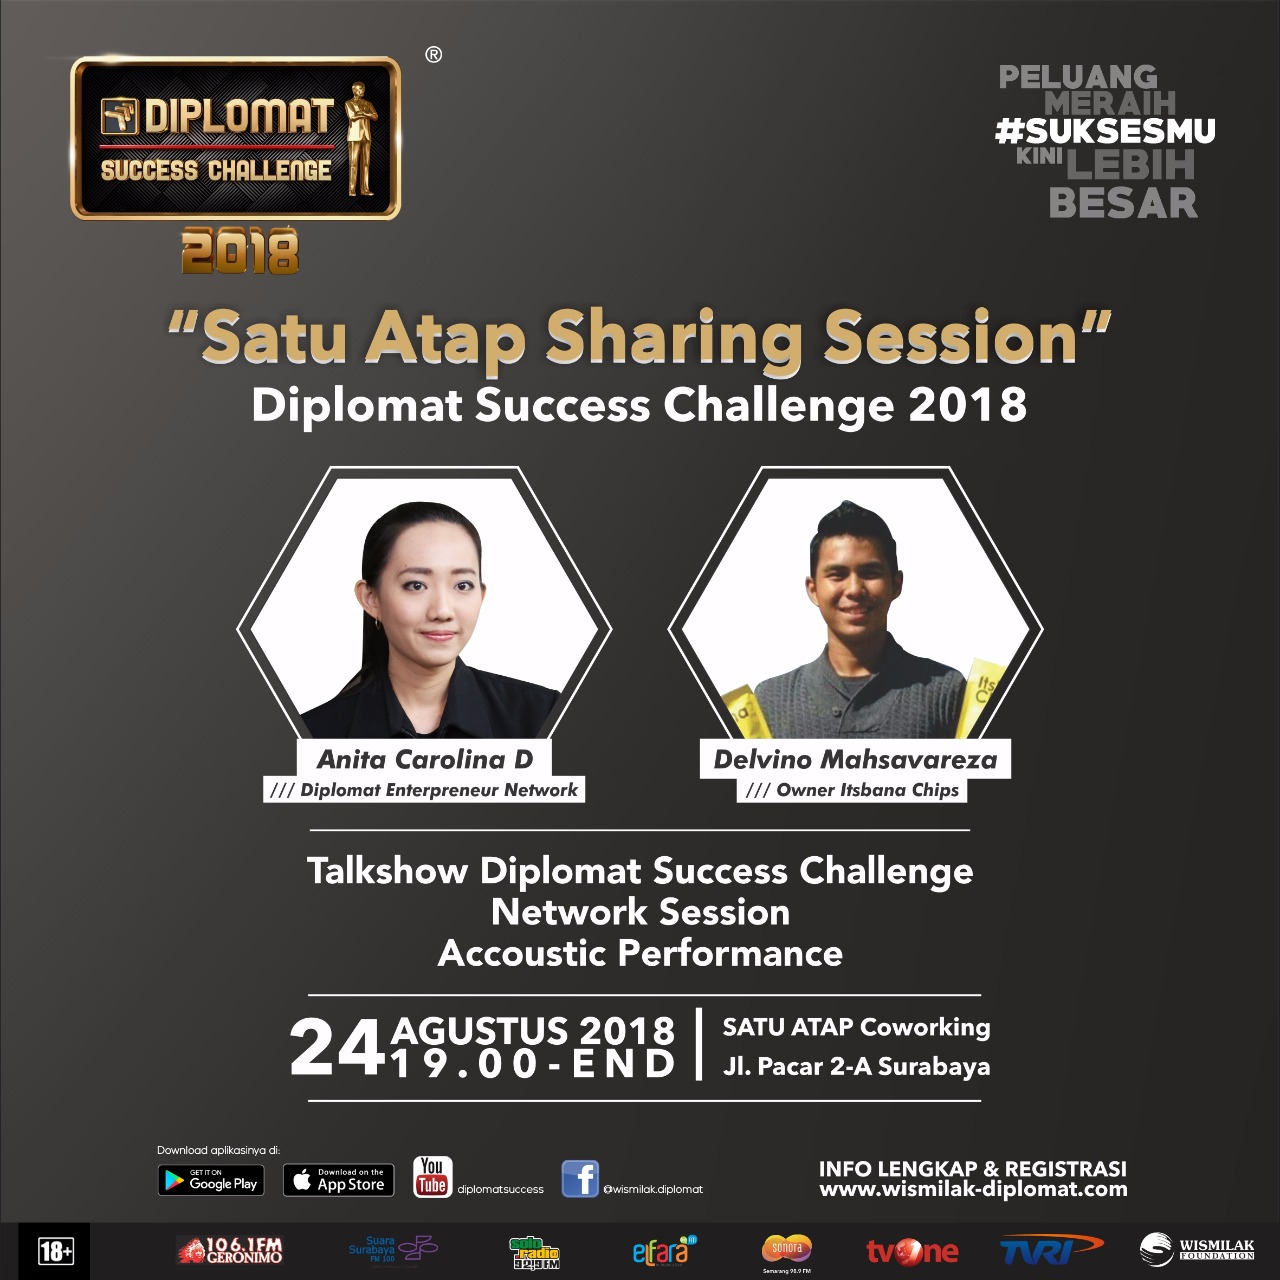 feature-wismilak-diplomat-success-challenge-2018-event-business-satu-atap-coworking-space-and-food-station-surabaya-2